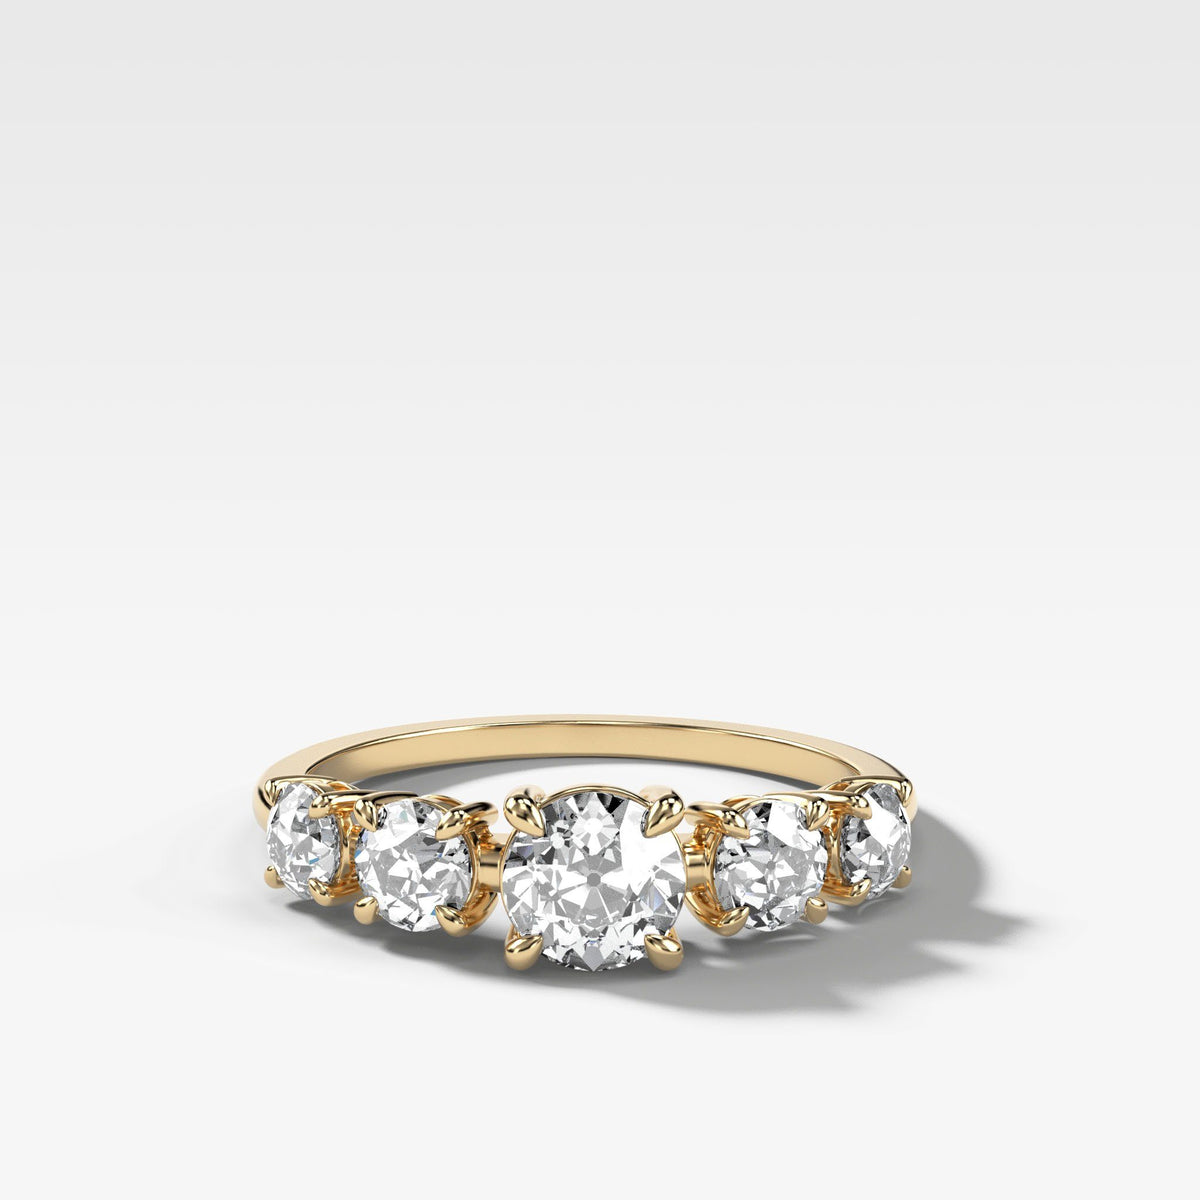 Graduated Five Stone ring with Old Euro Cut Diamonds in Yellow Gold by Good Stone